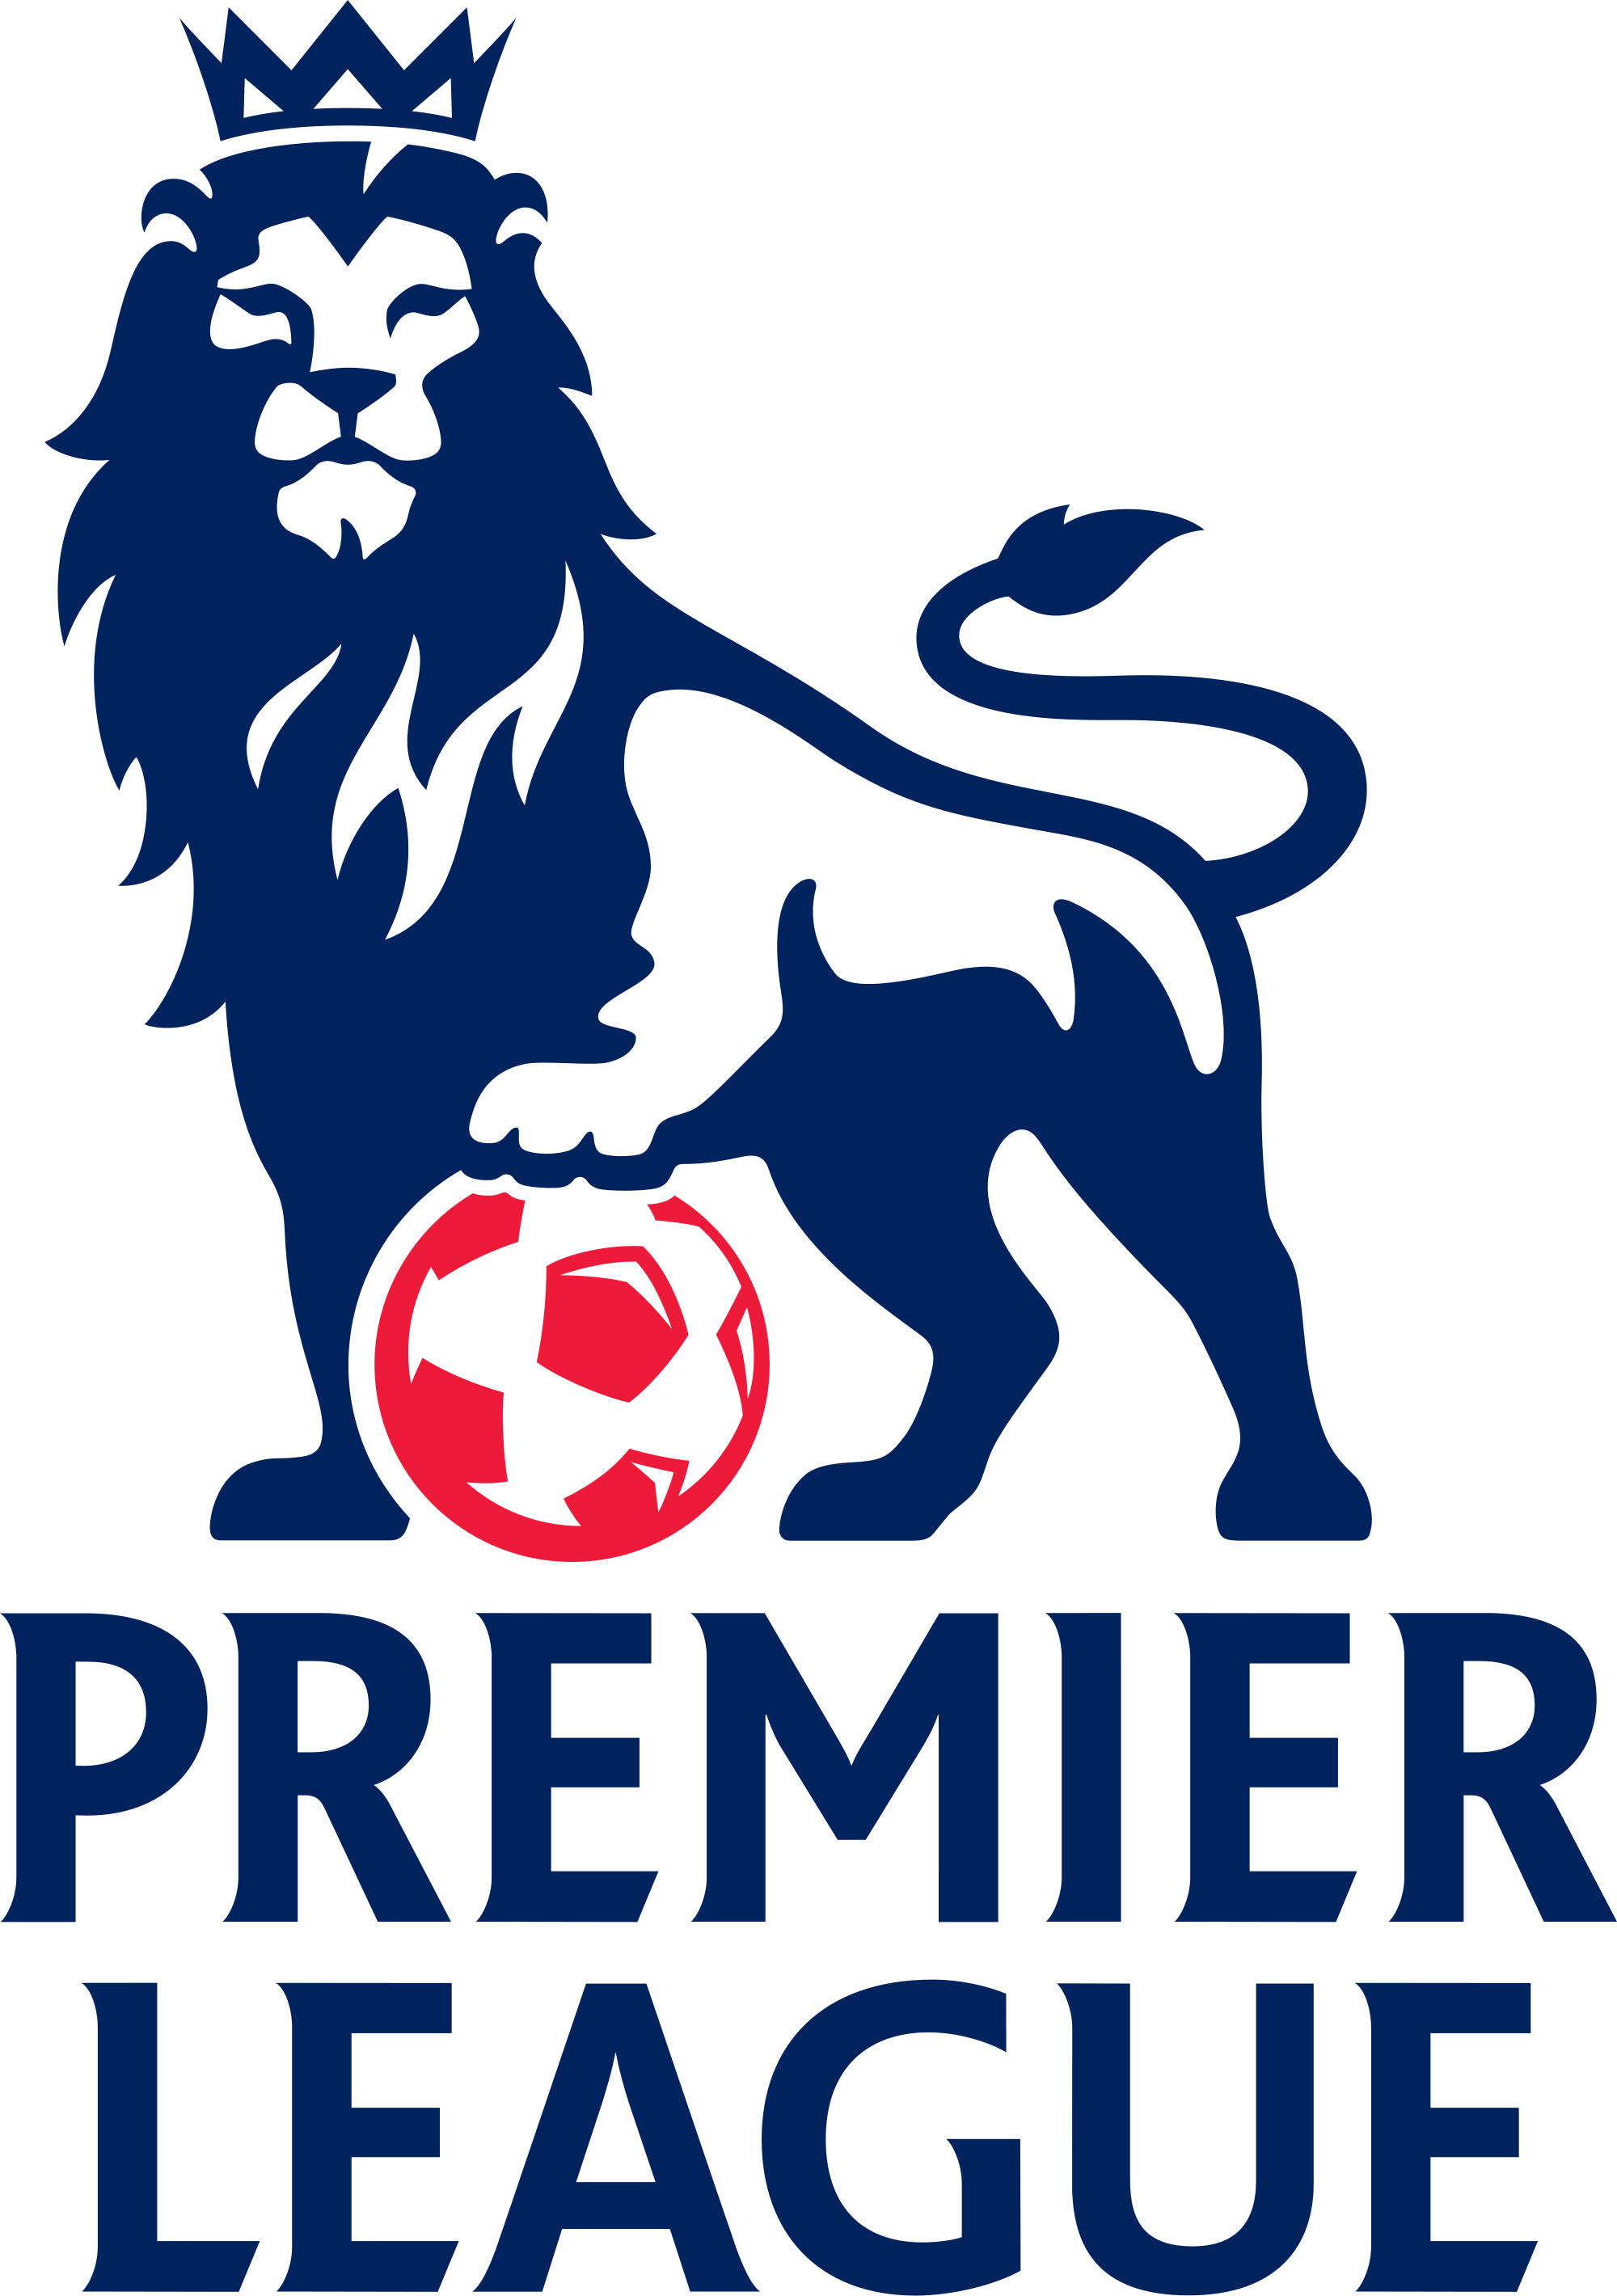 Premier League...go to a game (Liverpool V Manchester United would work) e9f650fe6